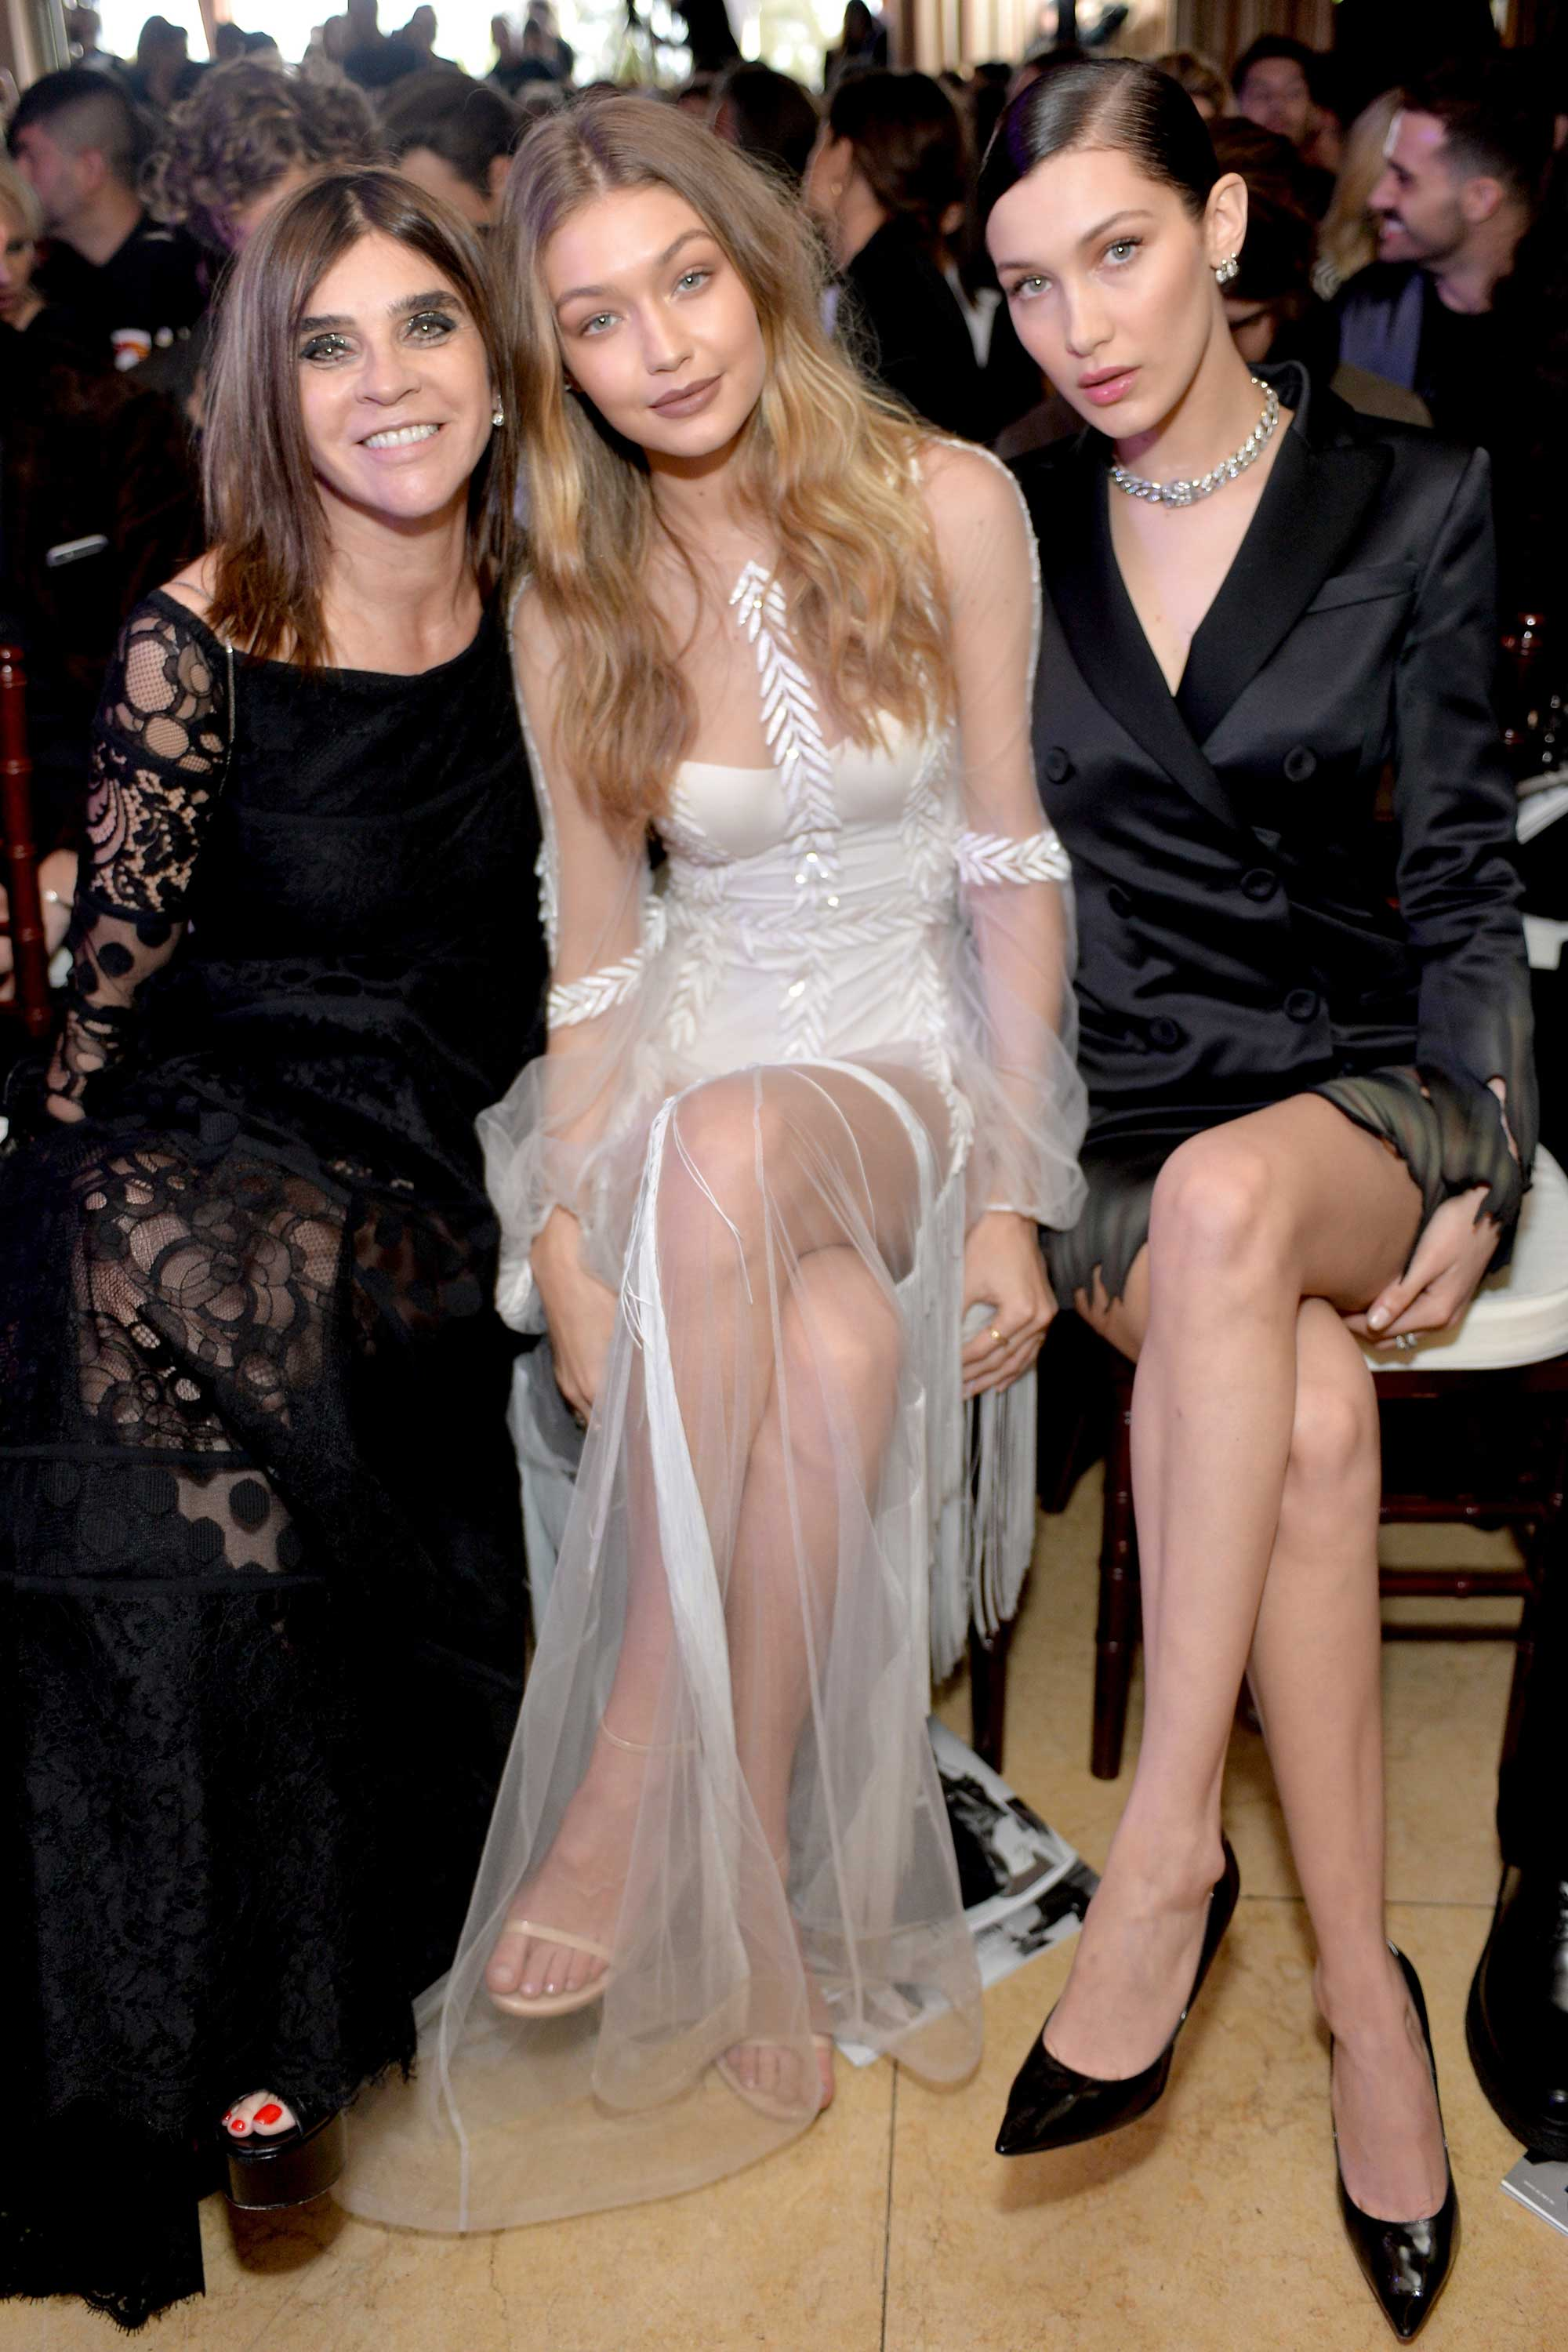 "<p>Fashion's elite hit LA's Sunset Tower Hotel overnight for <em>The Daily Front Row</em>'s second annual Fashion Los Angeles Awards. Big winners included Bella Hadid who, with boyfriend The Weeknd by her side, was crowned Model of the Year. Lady Gaga was named editor of the year for her work guest-editing an issue of <em>V</em>, while Carine Roitfeld won magazine of the year for her title <em>CR Fashion Book</em>. </p><p>Gigi Hadid got emotional presenting Roitfeld with the coveted award saying, ""On a personal note, thank you for believing in and giving me these past few years and being an unequivocal mentor and friend.  My career would be unrecognisable without you.""<br><br>Click through to see who was there and what they wore.</p>"